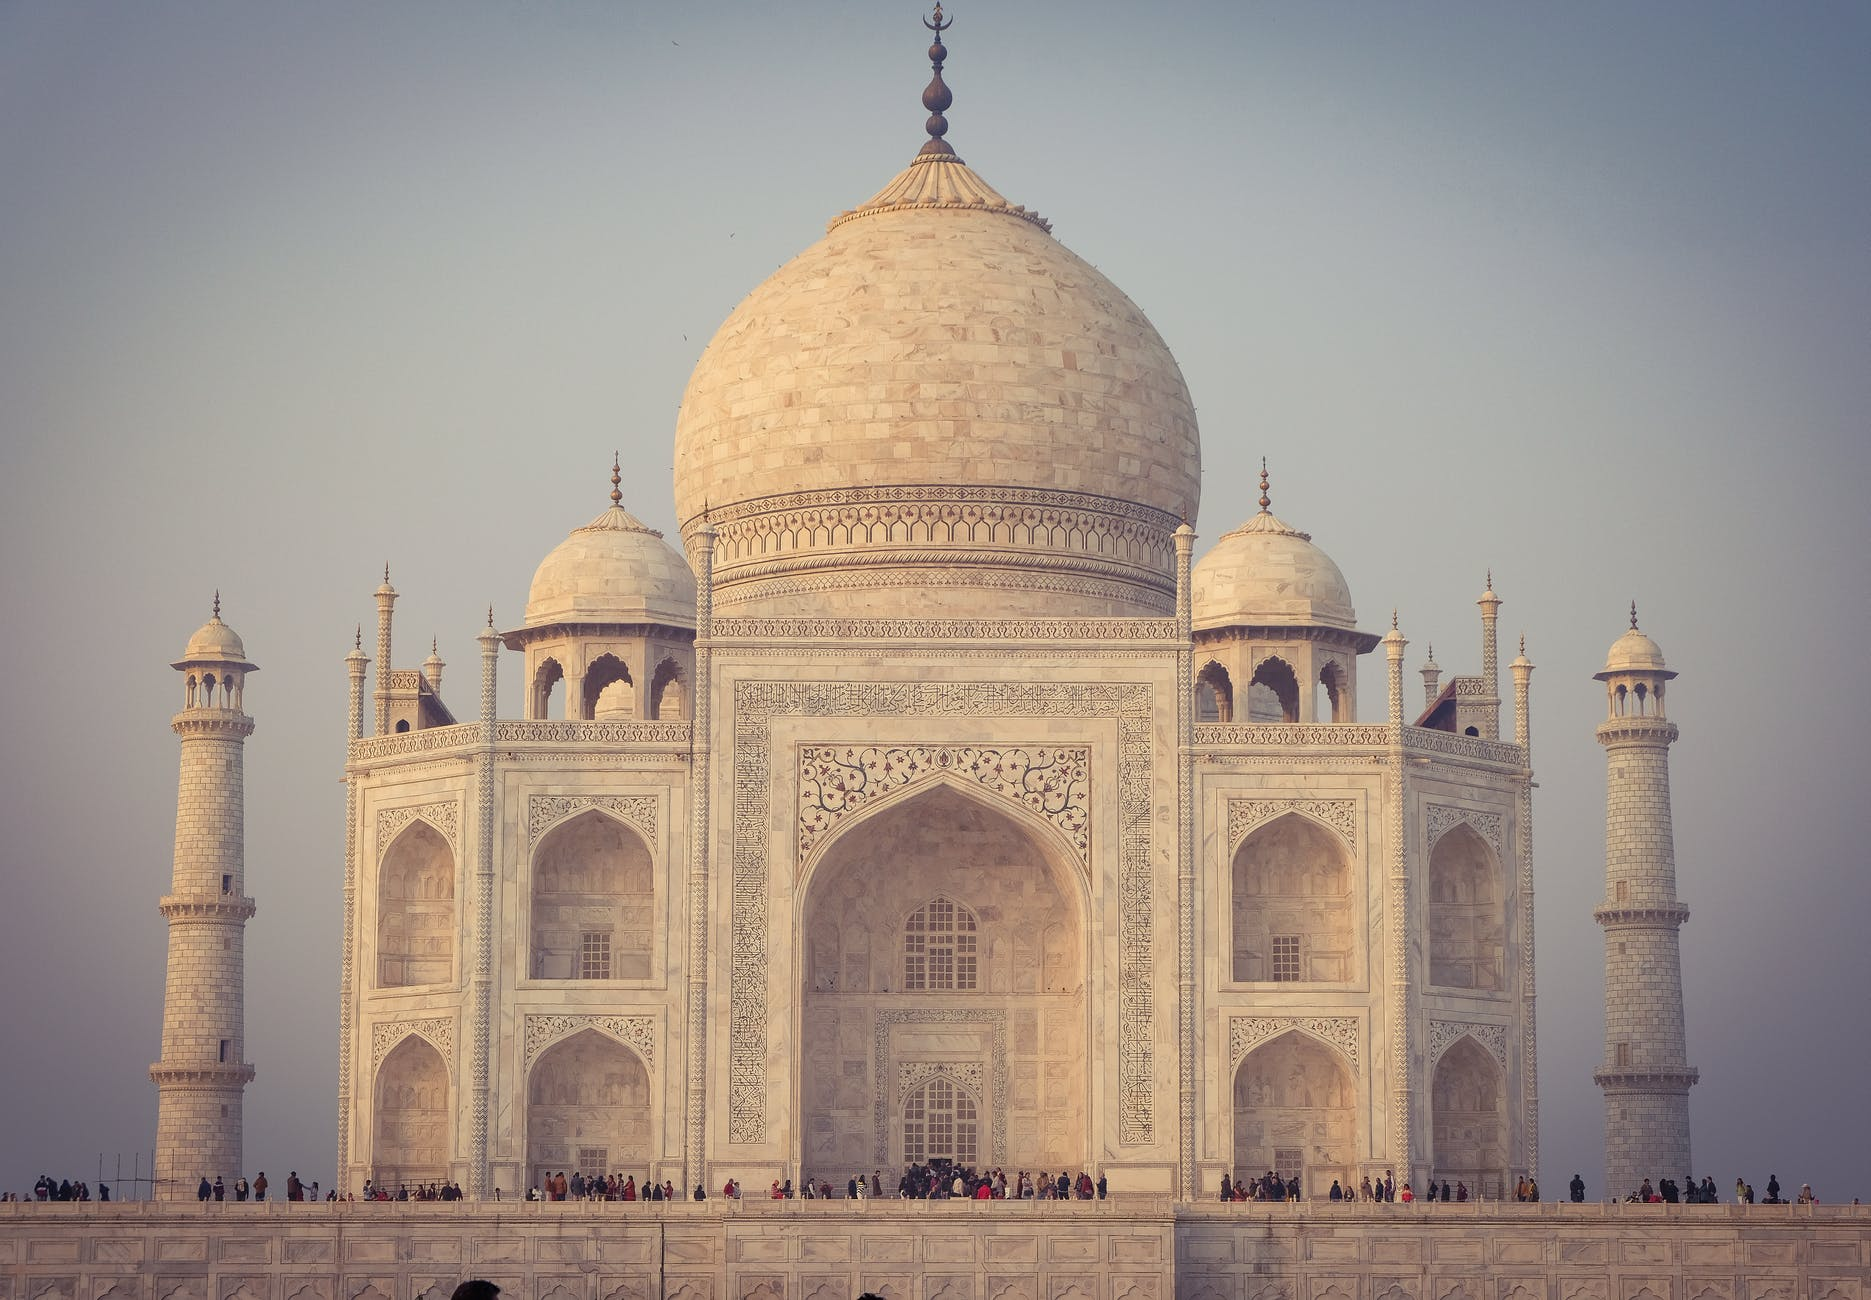 amazing mosque architecture in daylight,Amazing facts about the Taj Mahal